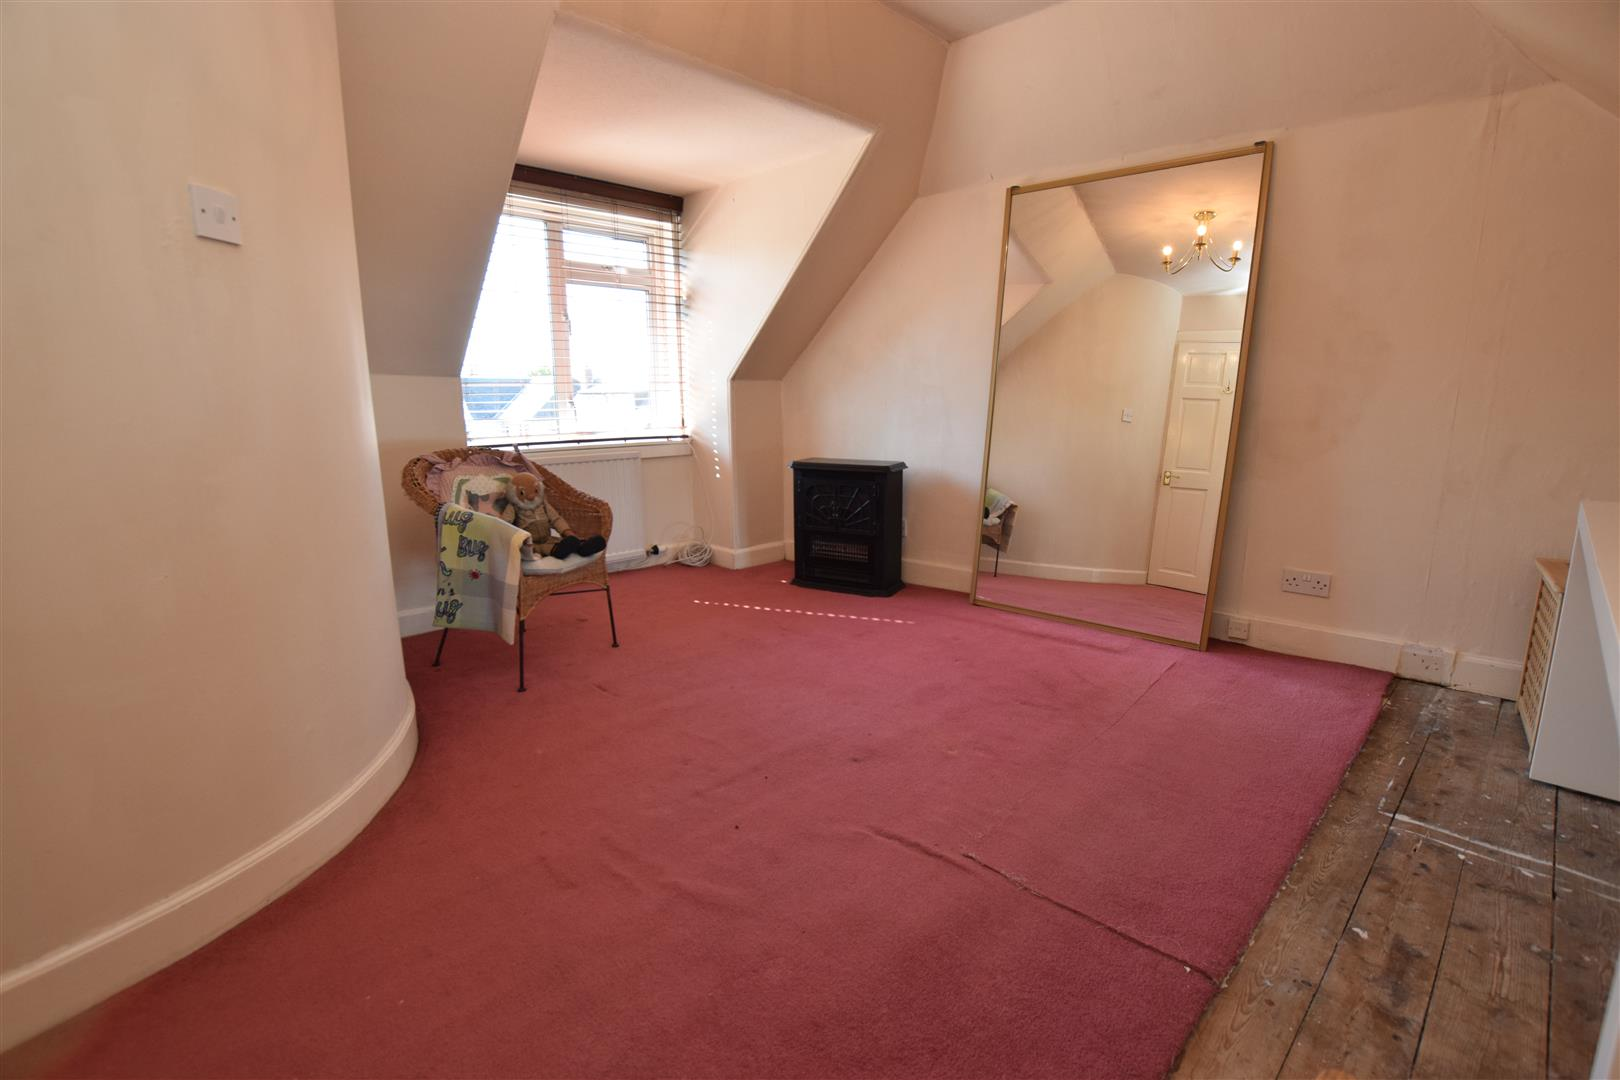 Burghmuir Road, Perth, Perthshire, PH1 1LH, UK